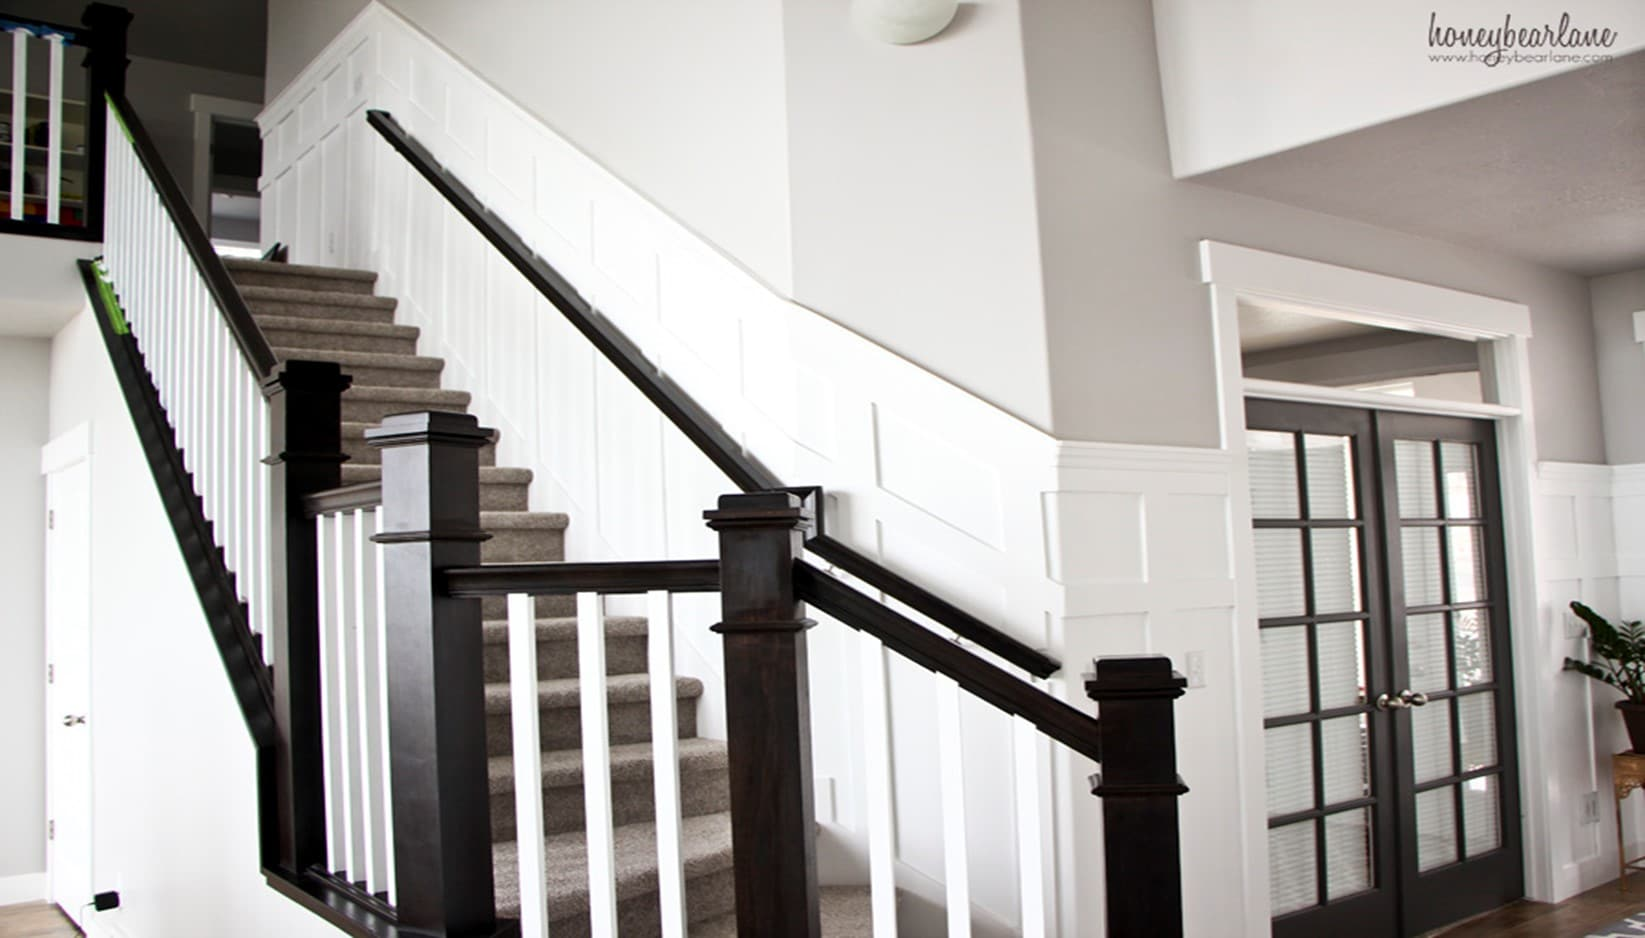 How to Add Wainscoting on Your Stairs: DIY Guide